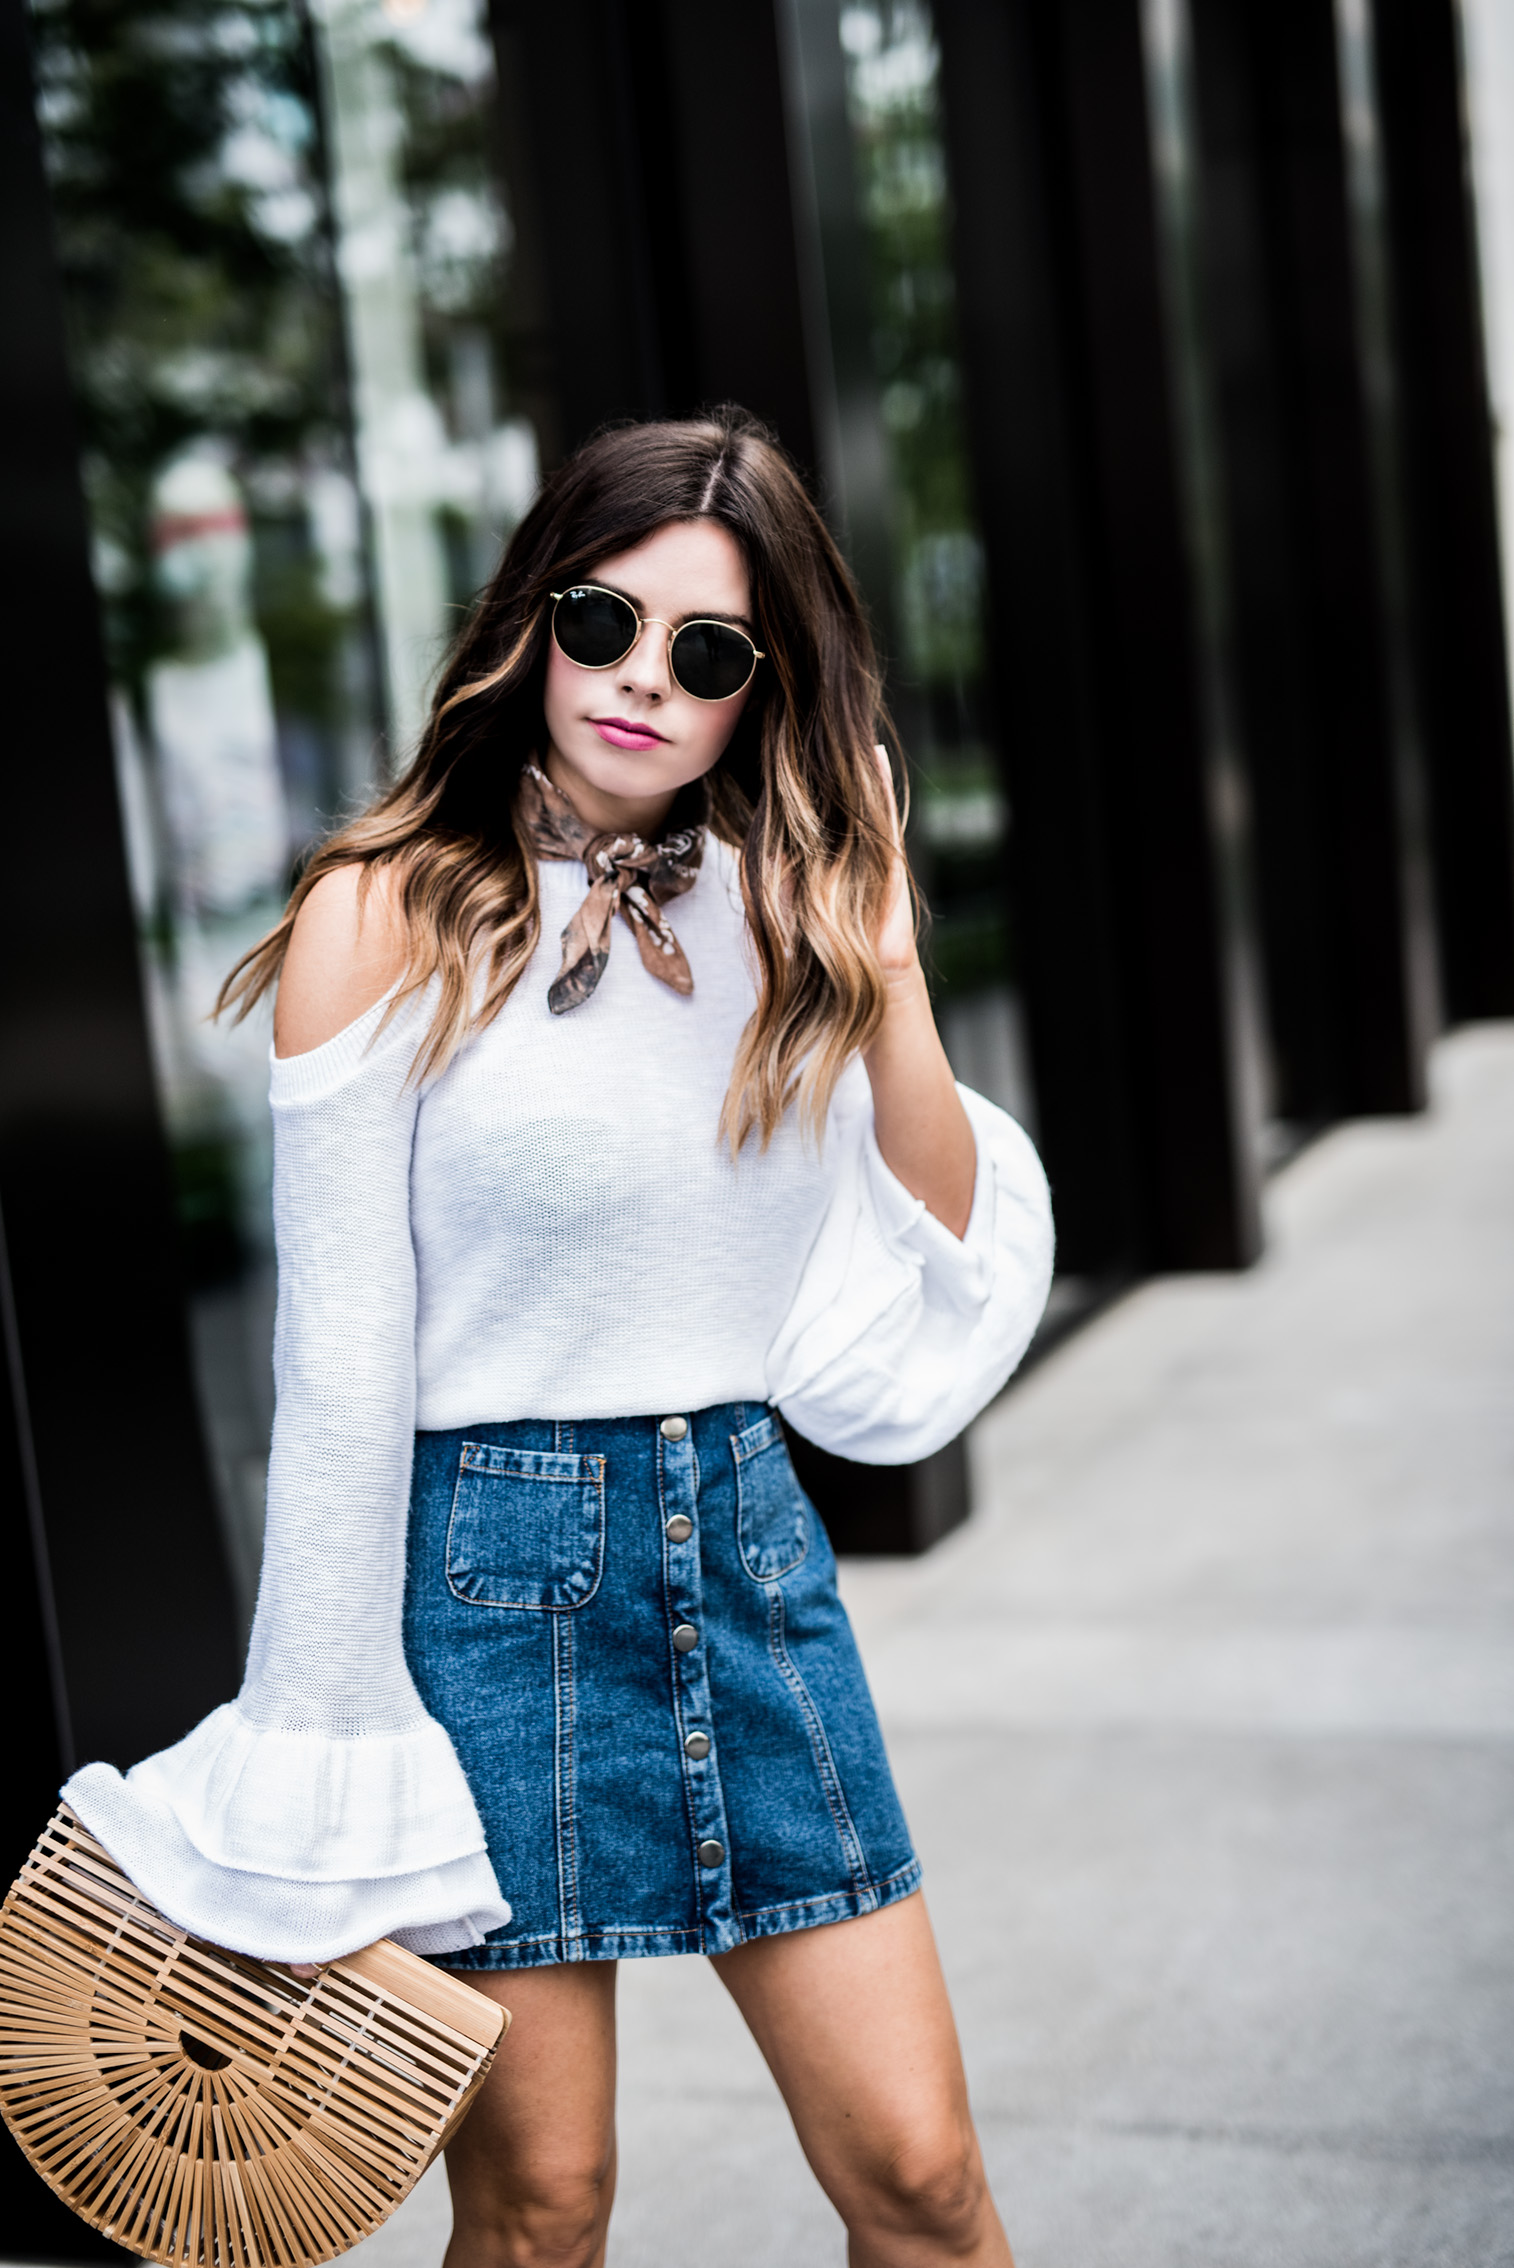 Tiffany Jais Houston fashion and lifestyle blogger | 3 reasons to love denim skirts again, casual fashion, spring outfit ideas, cult gaia bag, button denim mini skirt, brown lace up heels